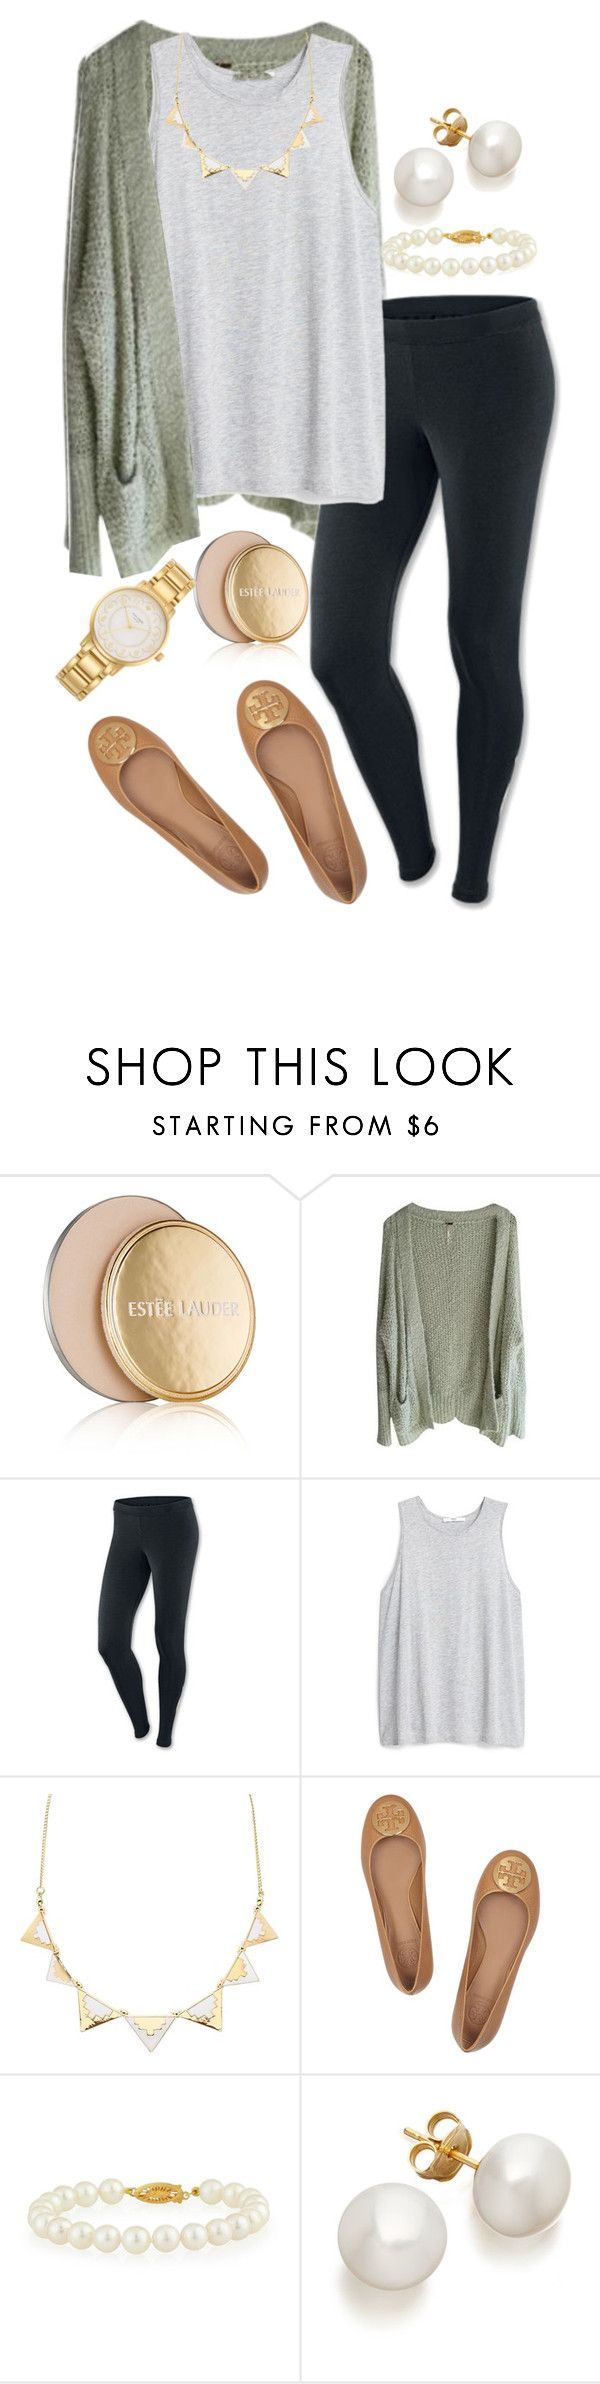 """When in times of need, I look towards Christ for hope✝"" by madelyn-abigail ❤ liked on Polyvore featuring Estée Lauder, Free People, NIKE, MANGO, Charlotte Russe, Tory Burch, Belpearl and Kate Spade"